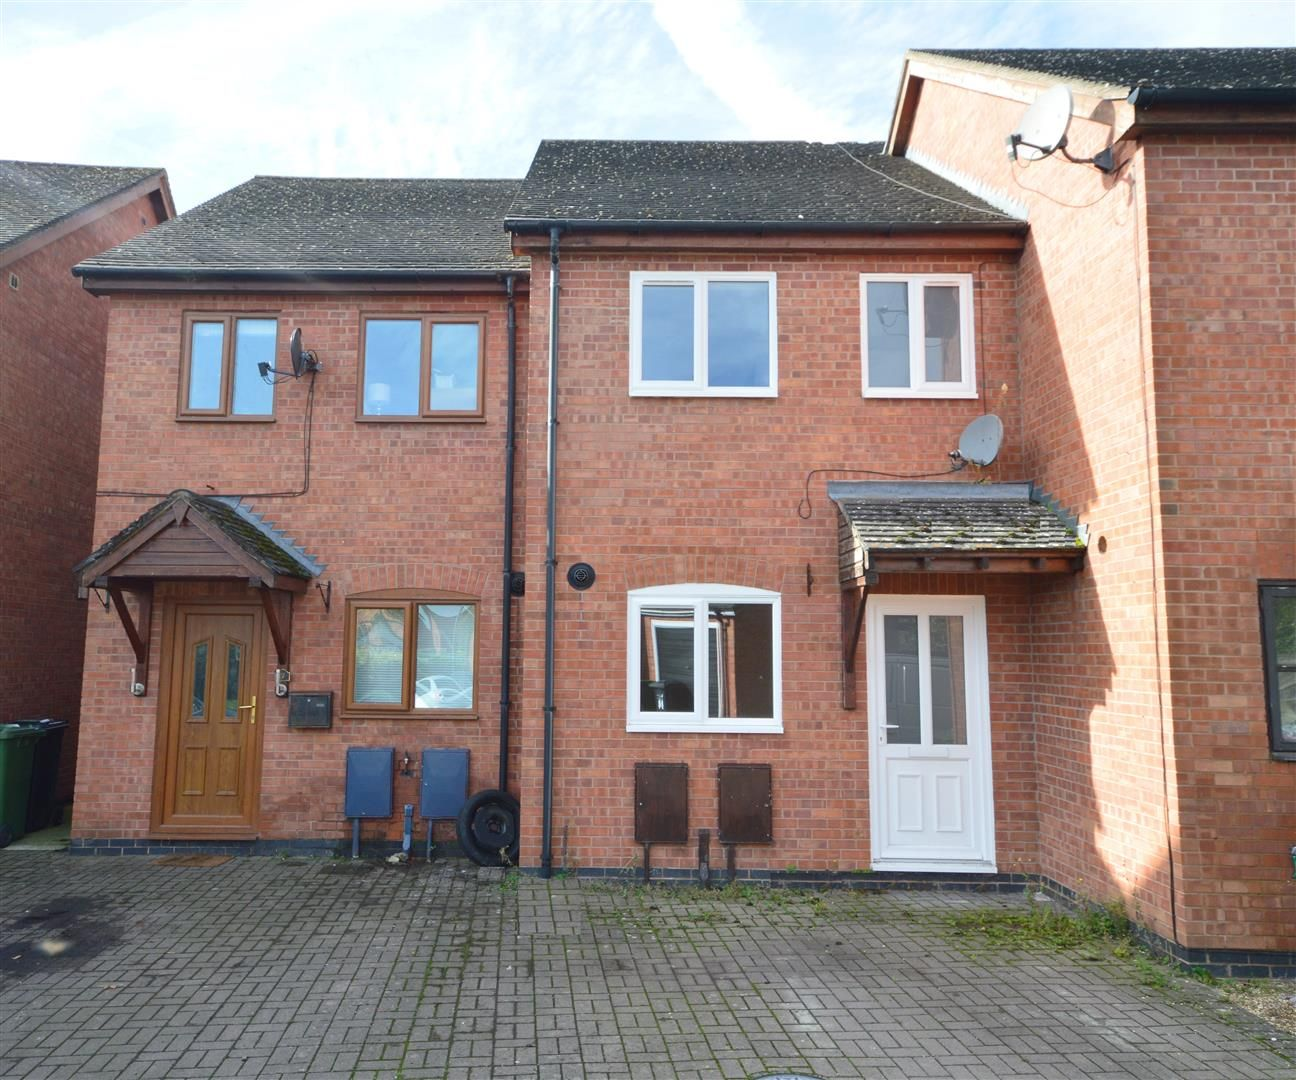 2 bed terraced for sale in Lower Bullingham  - Property Image 2